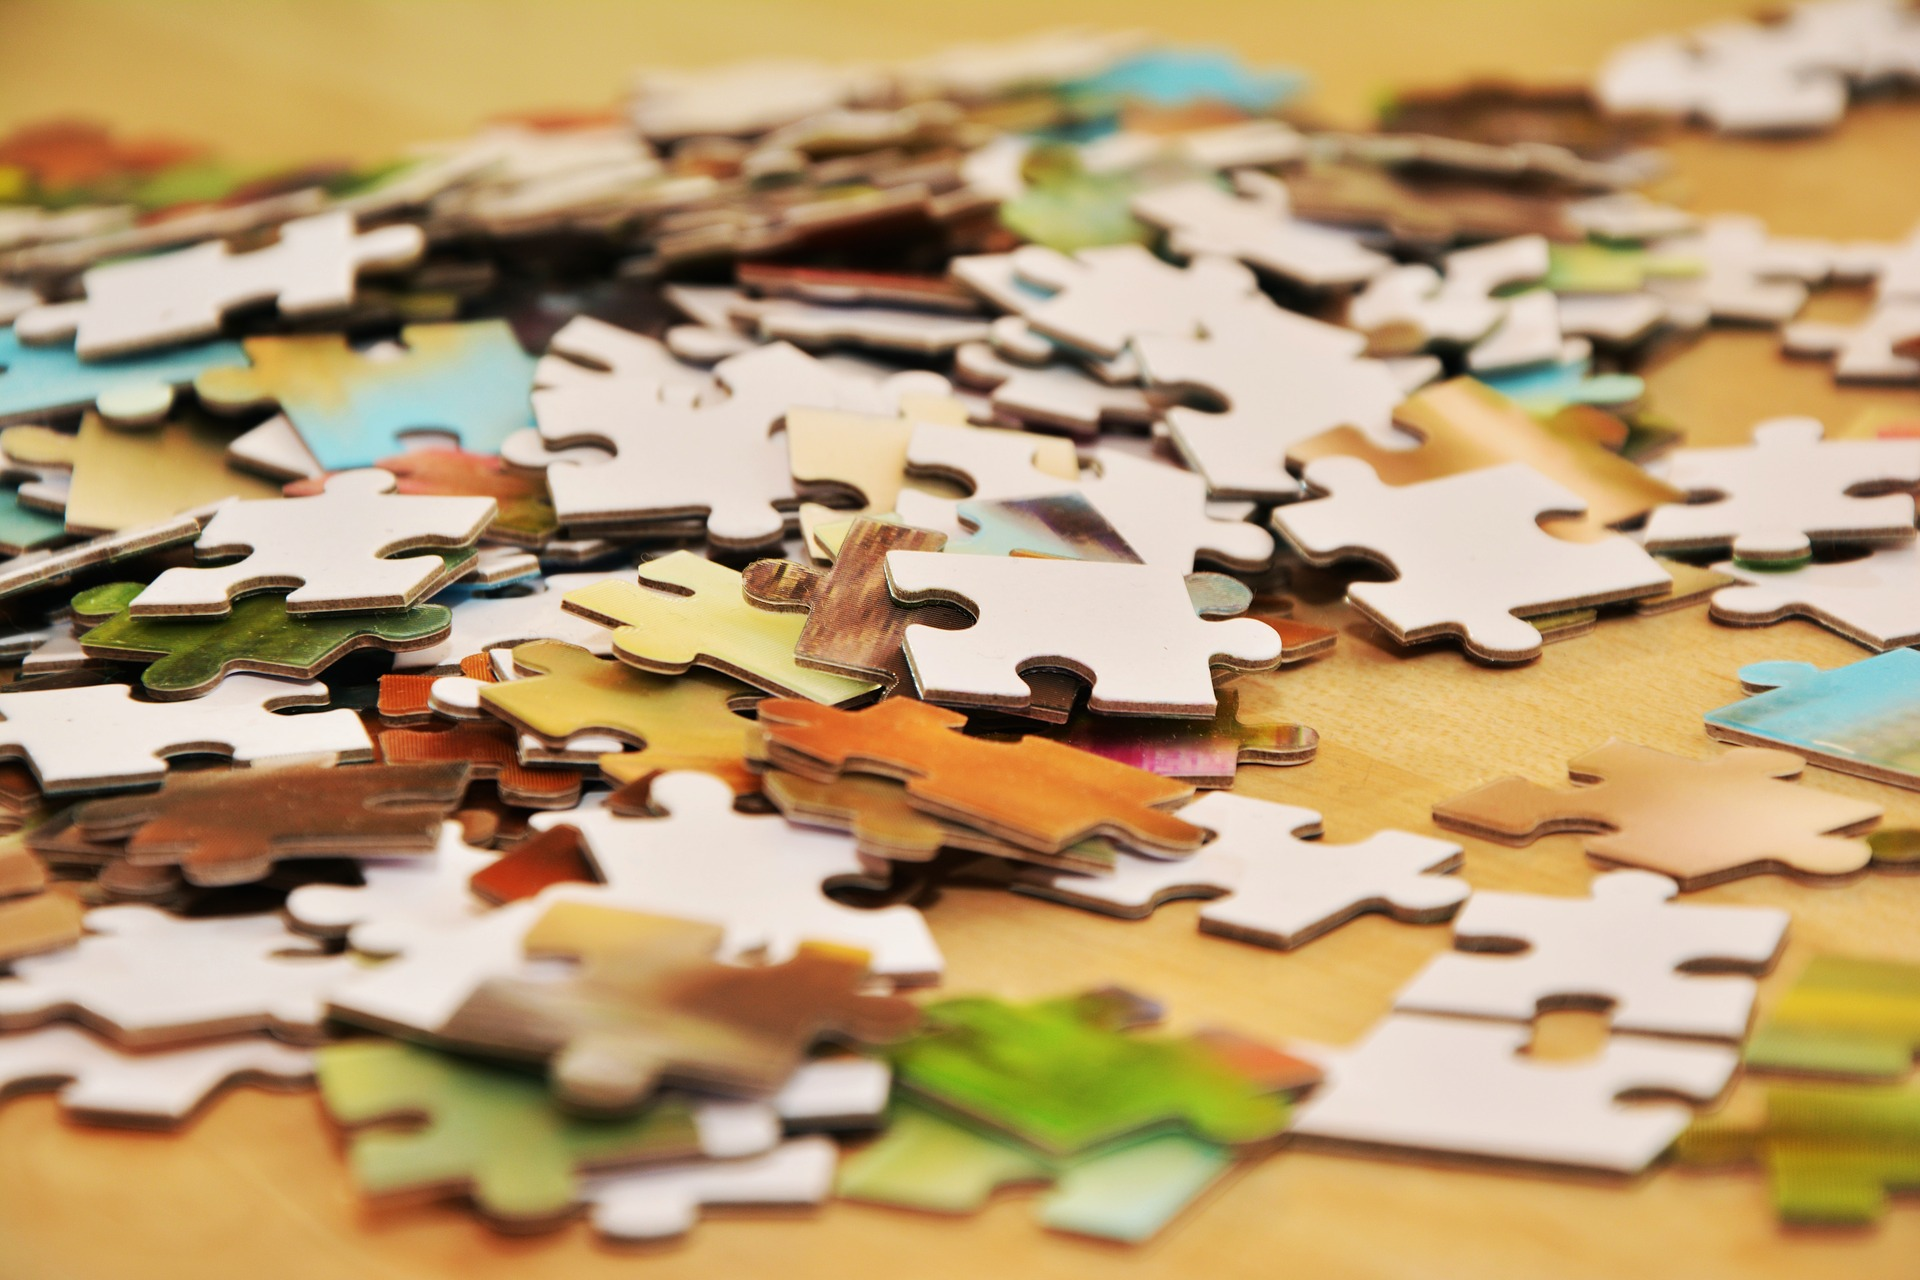 pieces-of-the-puzzle-1925425_1920